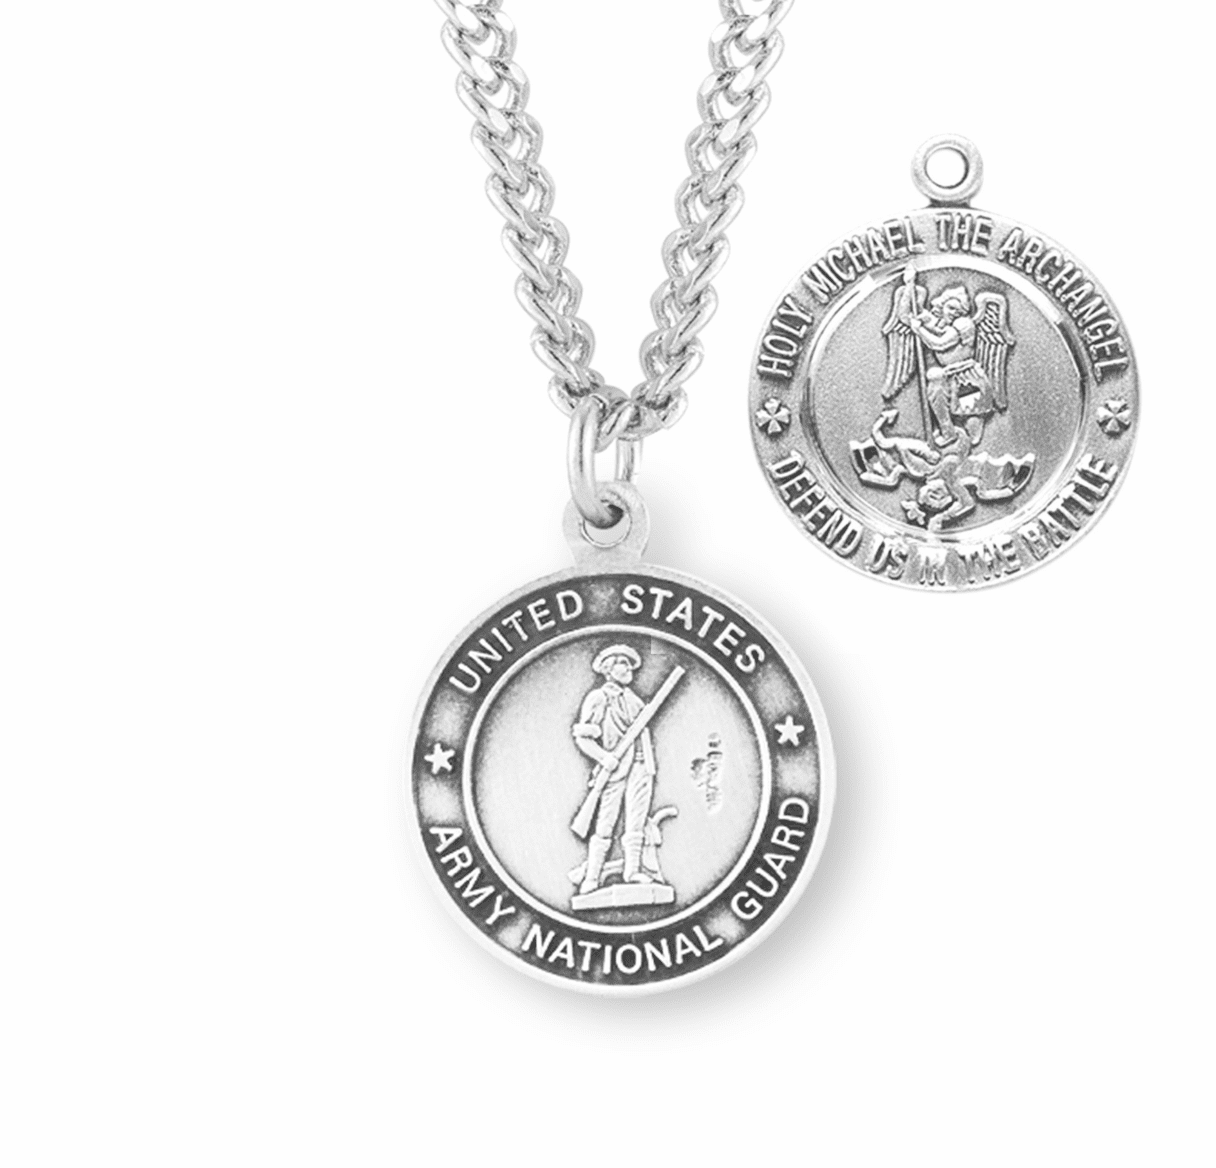 Military St Michael National Guard Sterling Silver Medal Necklace by HMH Religious